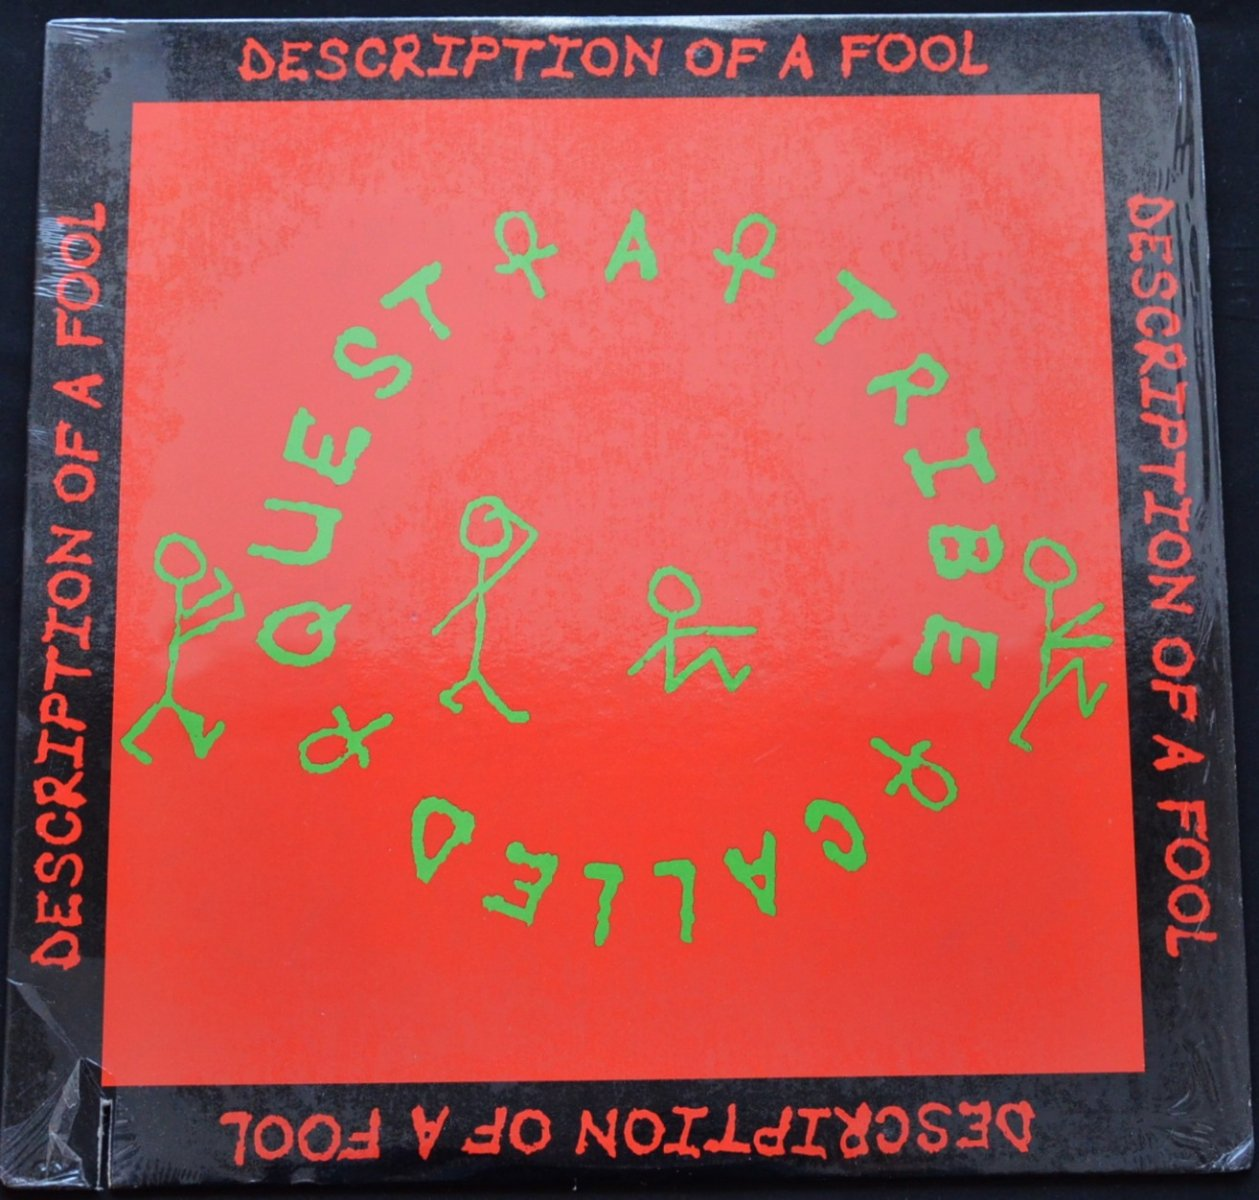 A TRIBE CALLED QUEST ‎/ DESCRIPTION OF A FOOL (12